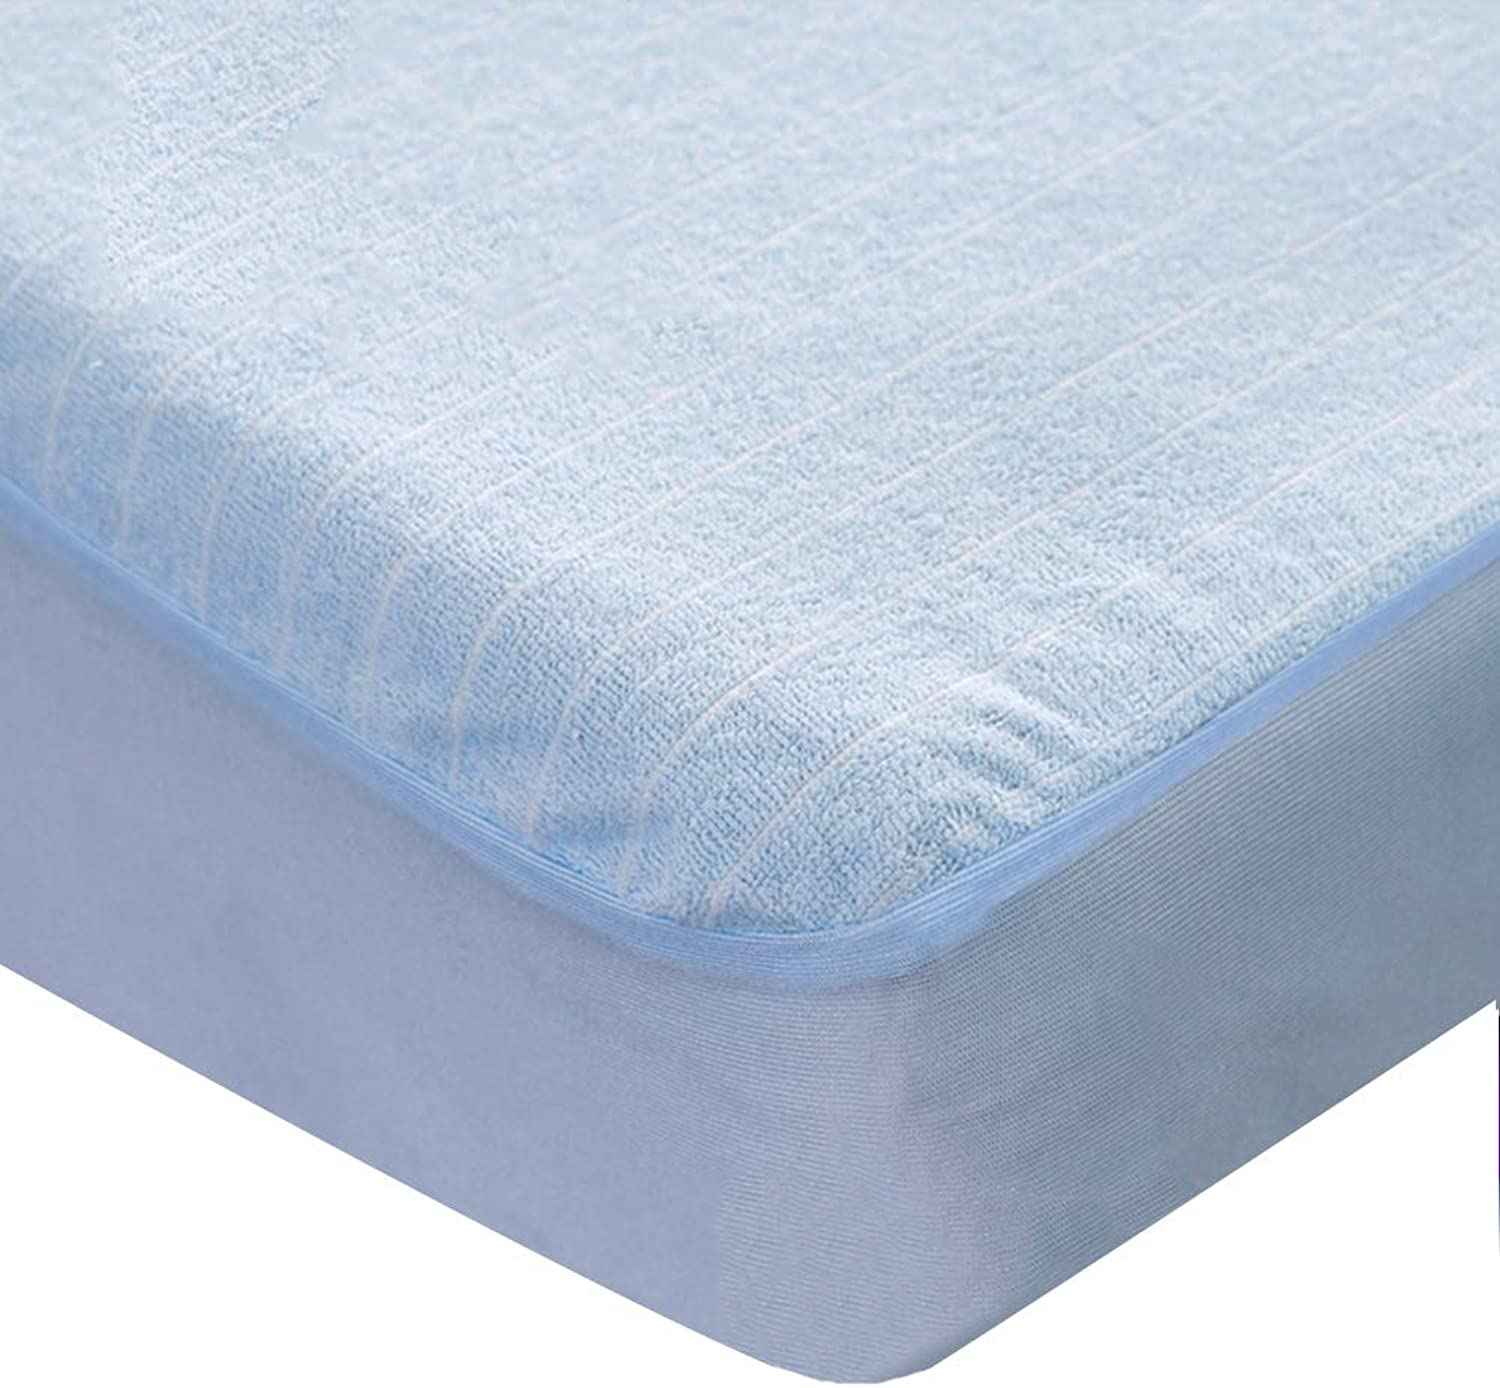 ZHAOHUI Mattress Predector Cotton Hypoallergenic Waterproof Non-Slip Dustproof Breathable Soft Skin-Friendly, 4 colors, 5 Sizes (color   bluee, Size   120X200cm)